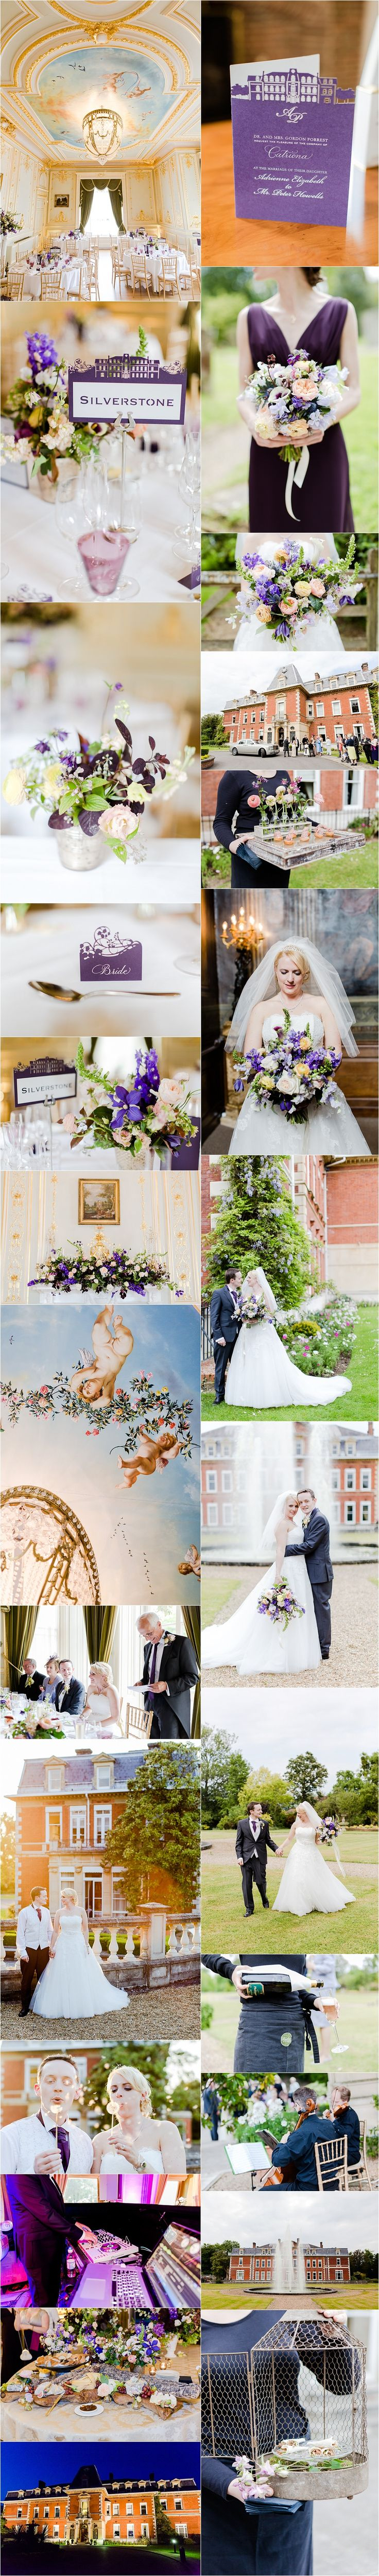 Wedding Photography | Fetcham Park wedding Surrey | Country House wedding | Cutture lasercut stationery | Bloomingayles | Kalm Kitchen | Maggie Sottero | Credit: Eddie Judd Photography